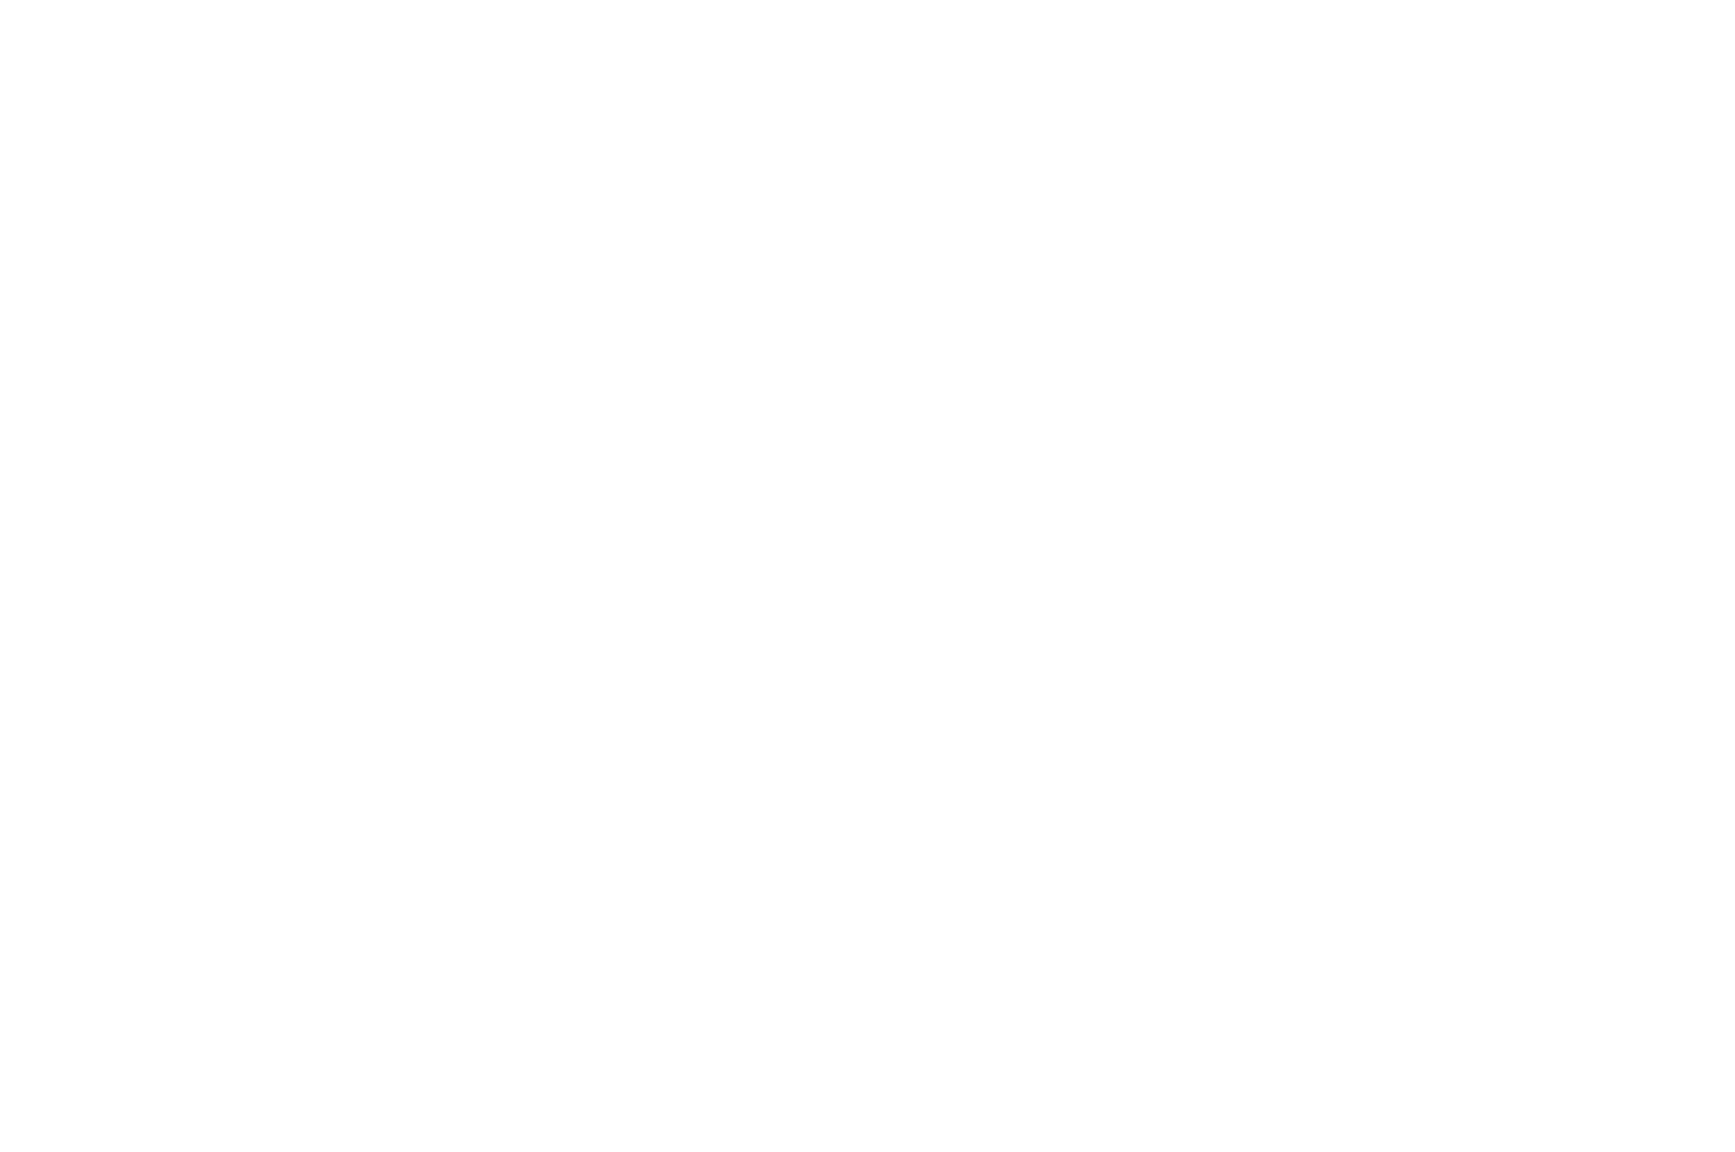 WINNER - First 10 Pages Script Contest - 2020